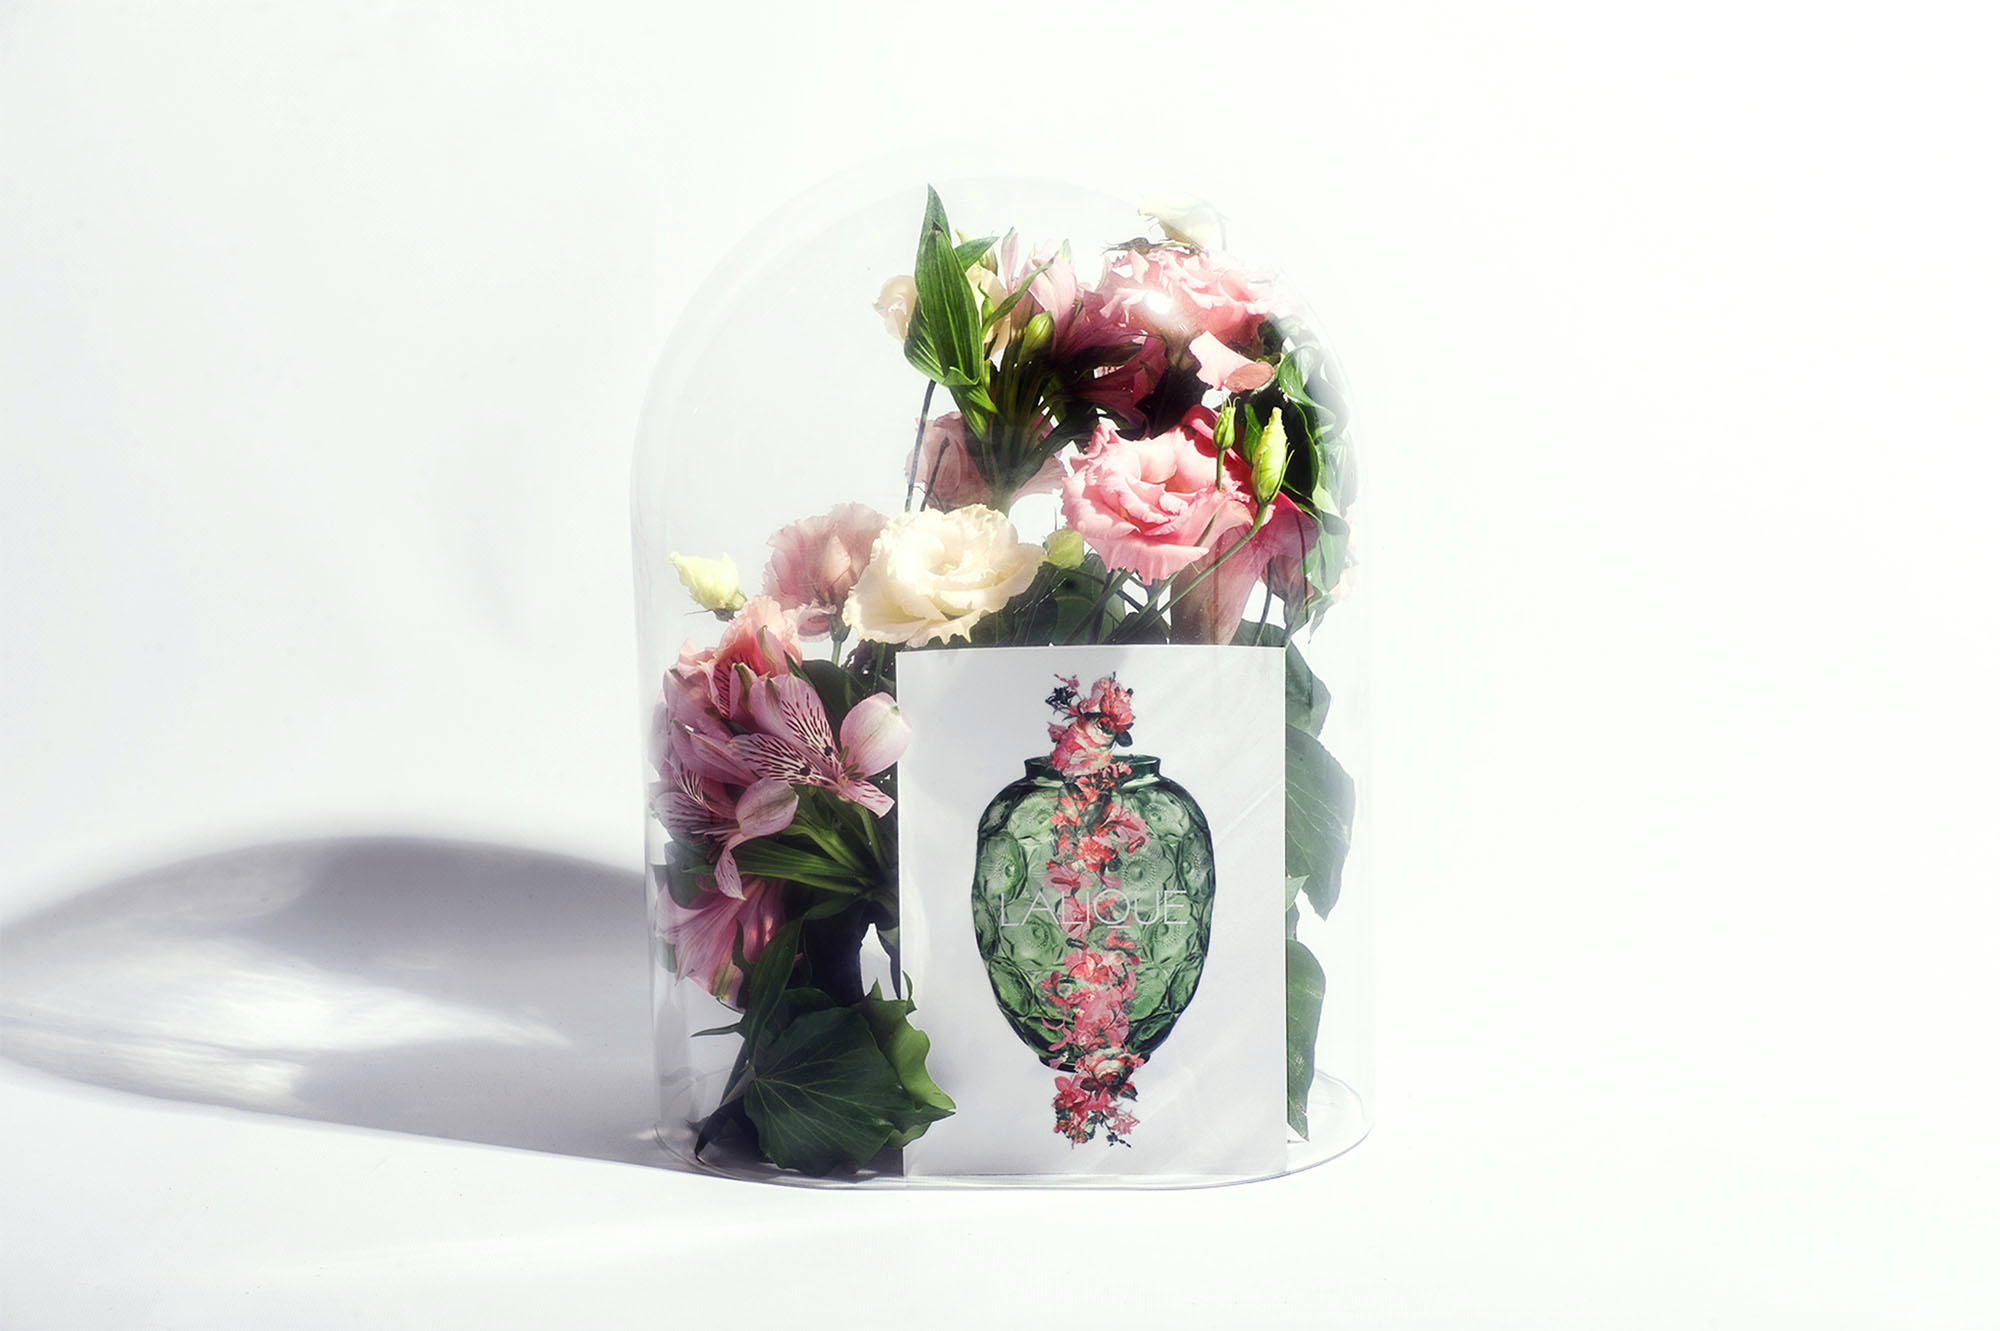 LALIQUE-INVITATION-ATELIER-FLORAL-1